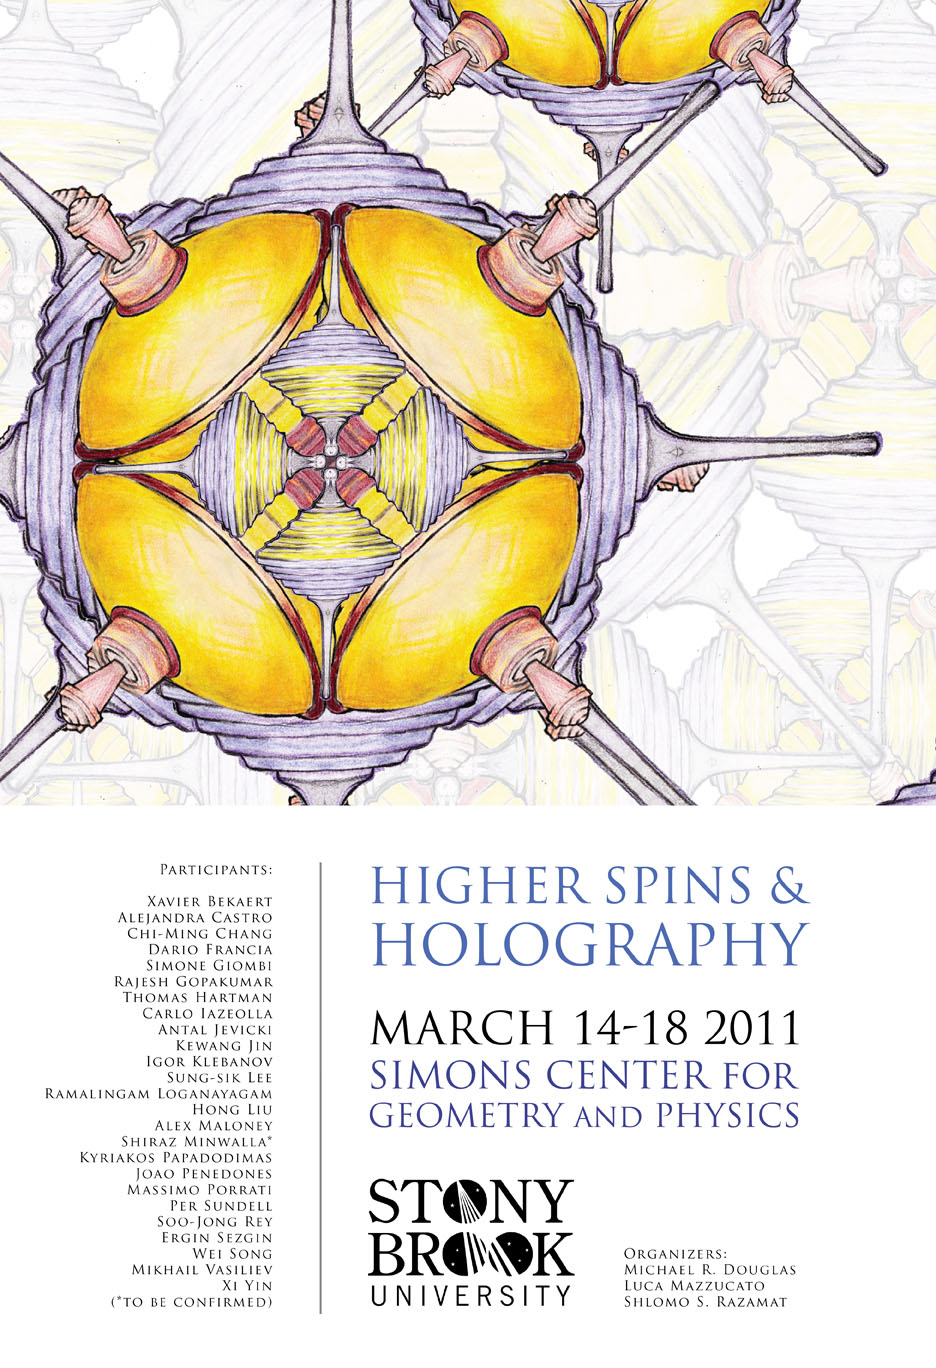 Higher Spin Theories and Holography Workshop March 14 – March 18